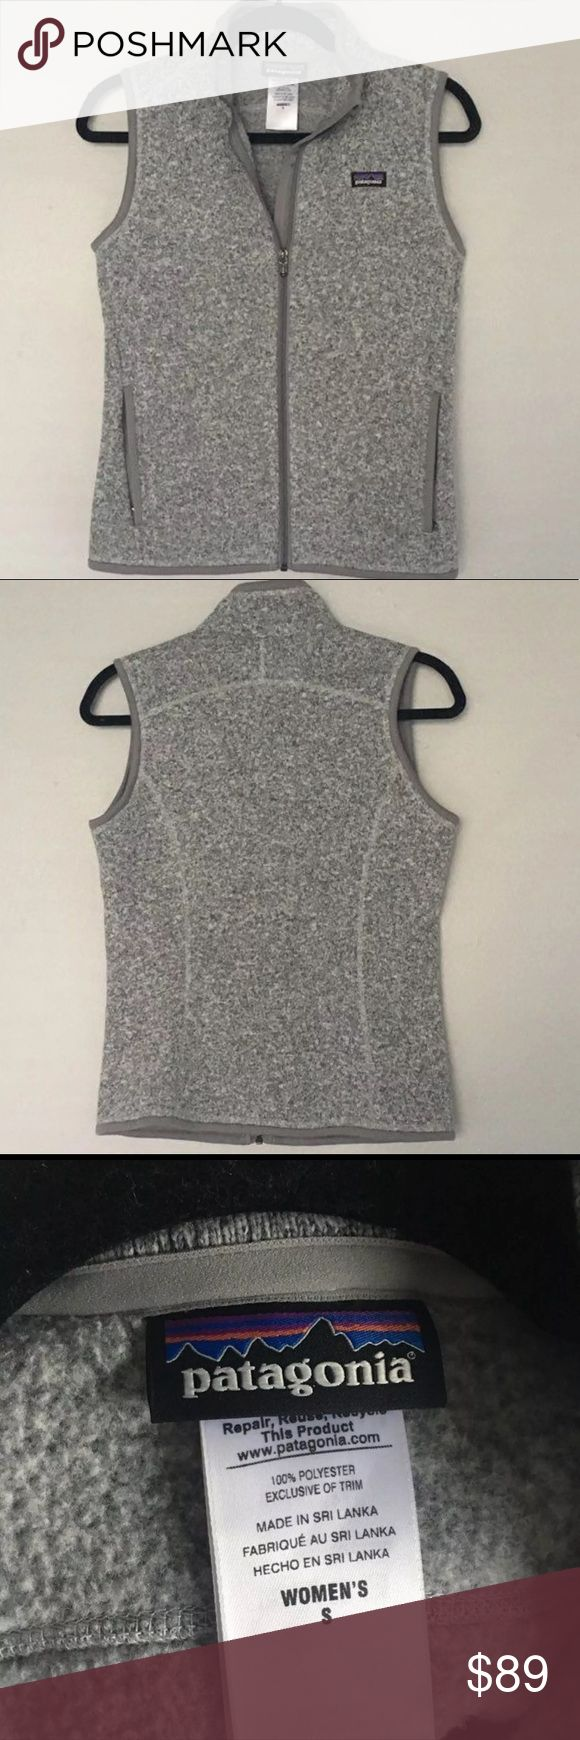 NWOT Patagonia Better Sweater Vest Never worn - women's size small- gray - firm price Patagonia Jackets & Coats Vests